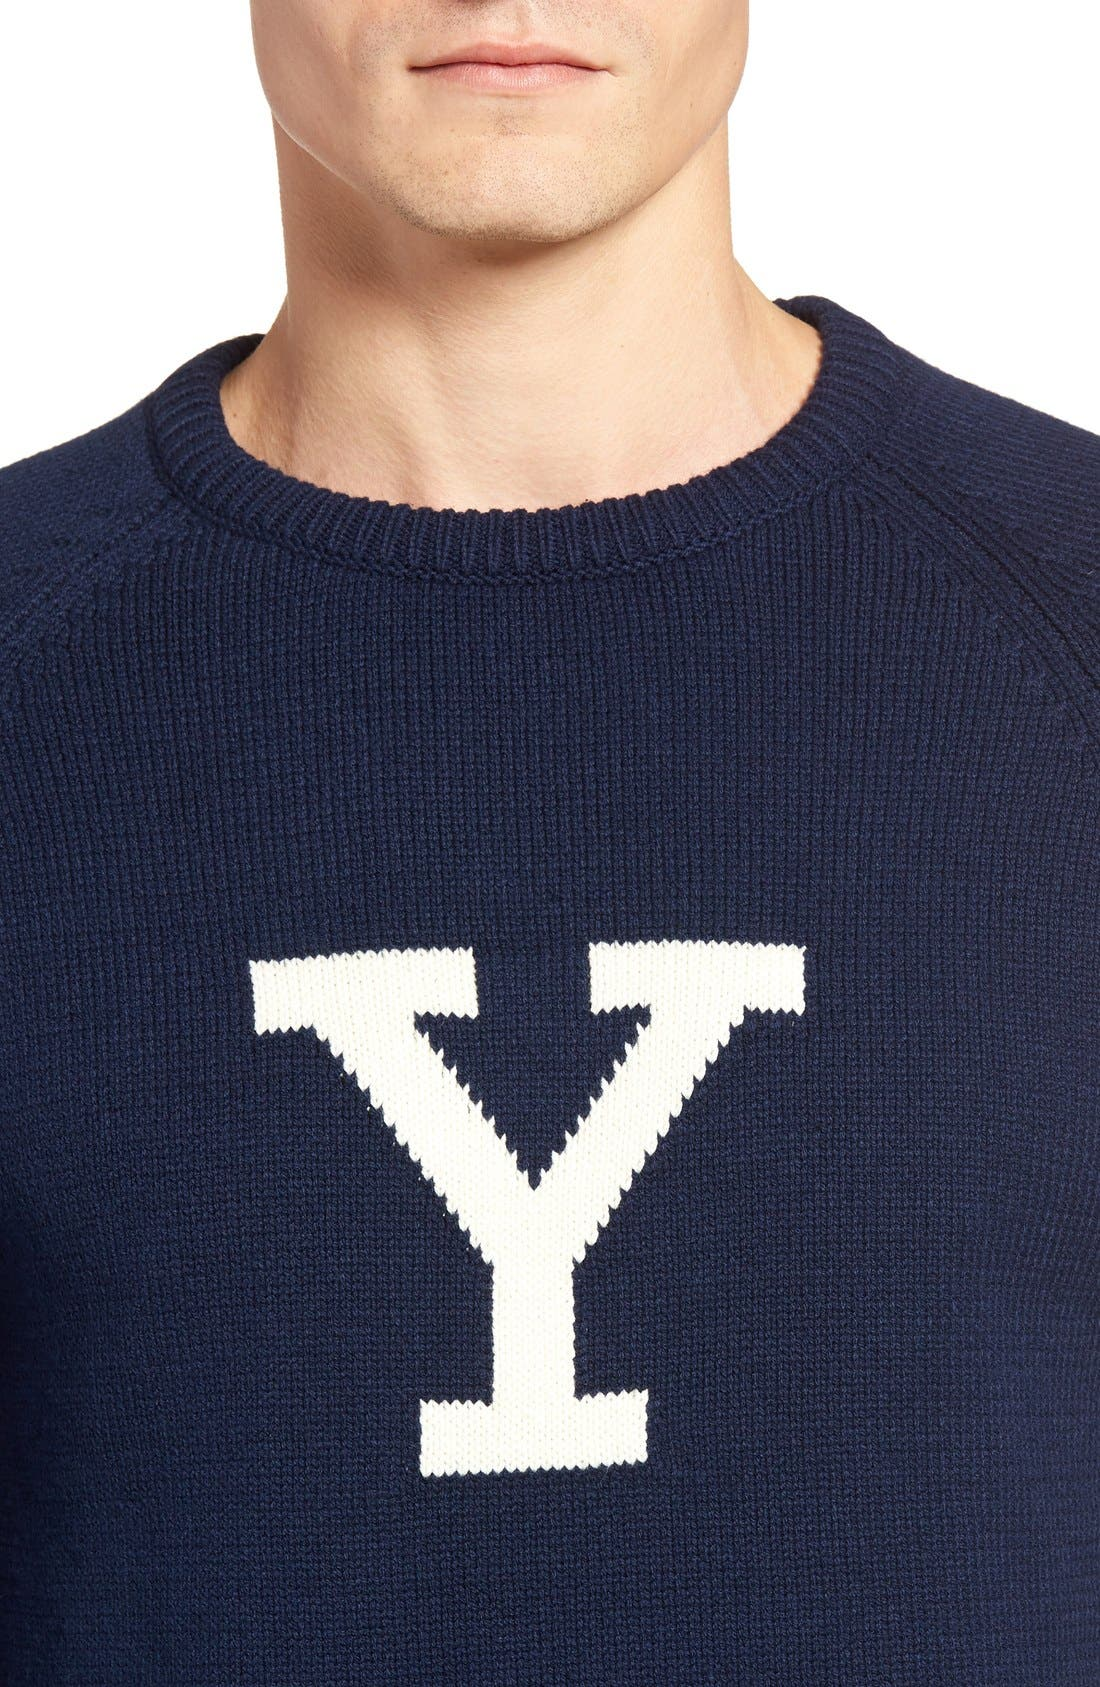 Yale Heritage Sweater,                             Alternate thumbnail 4, color,                             400